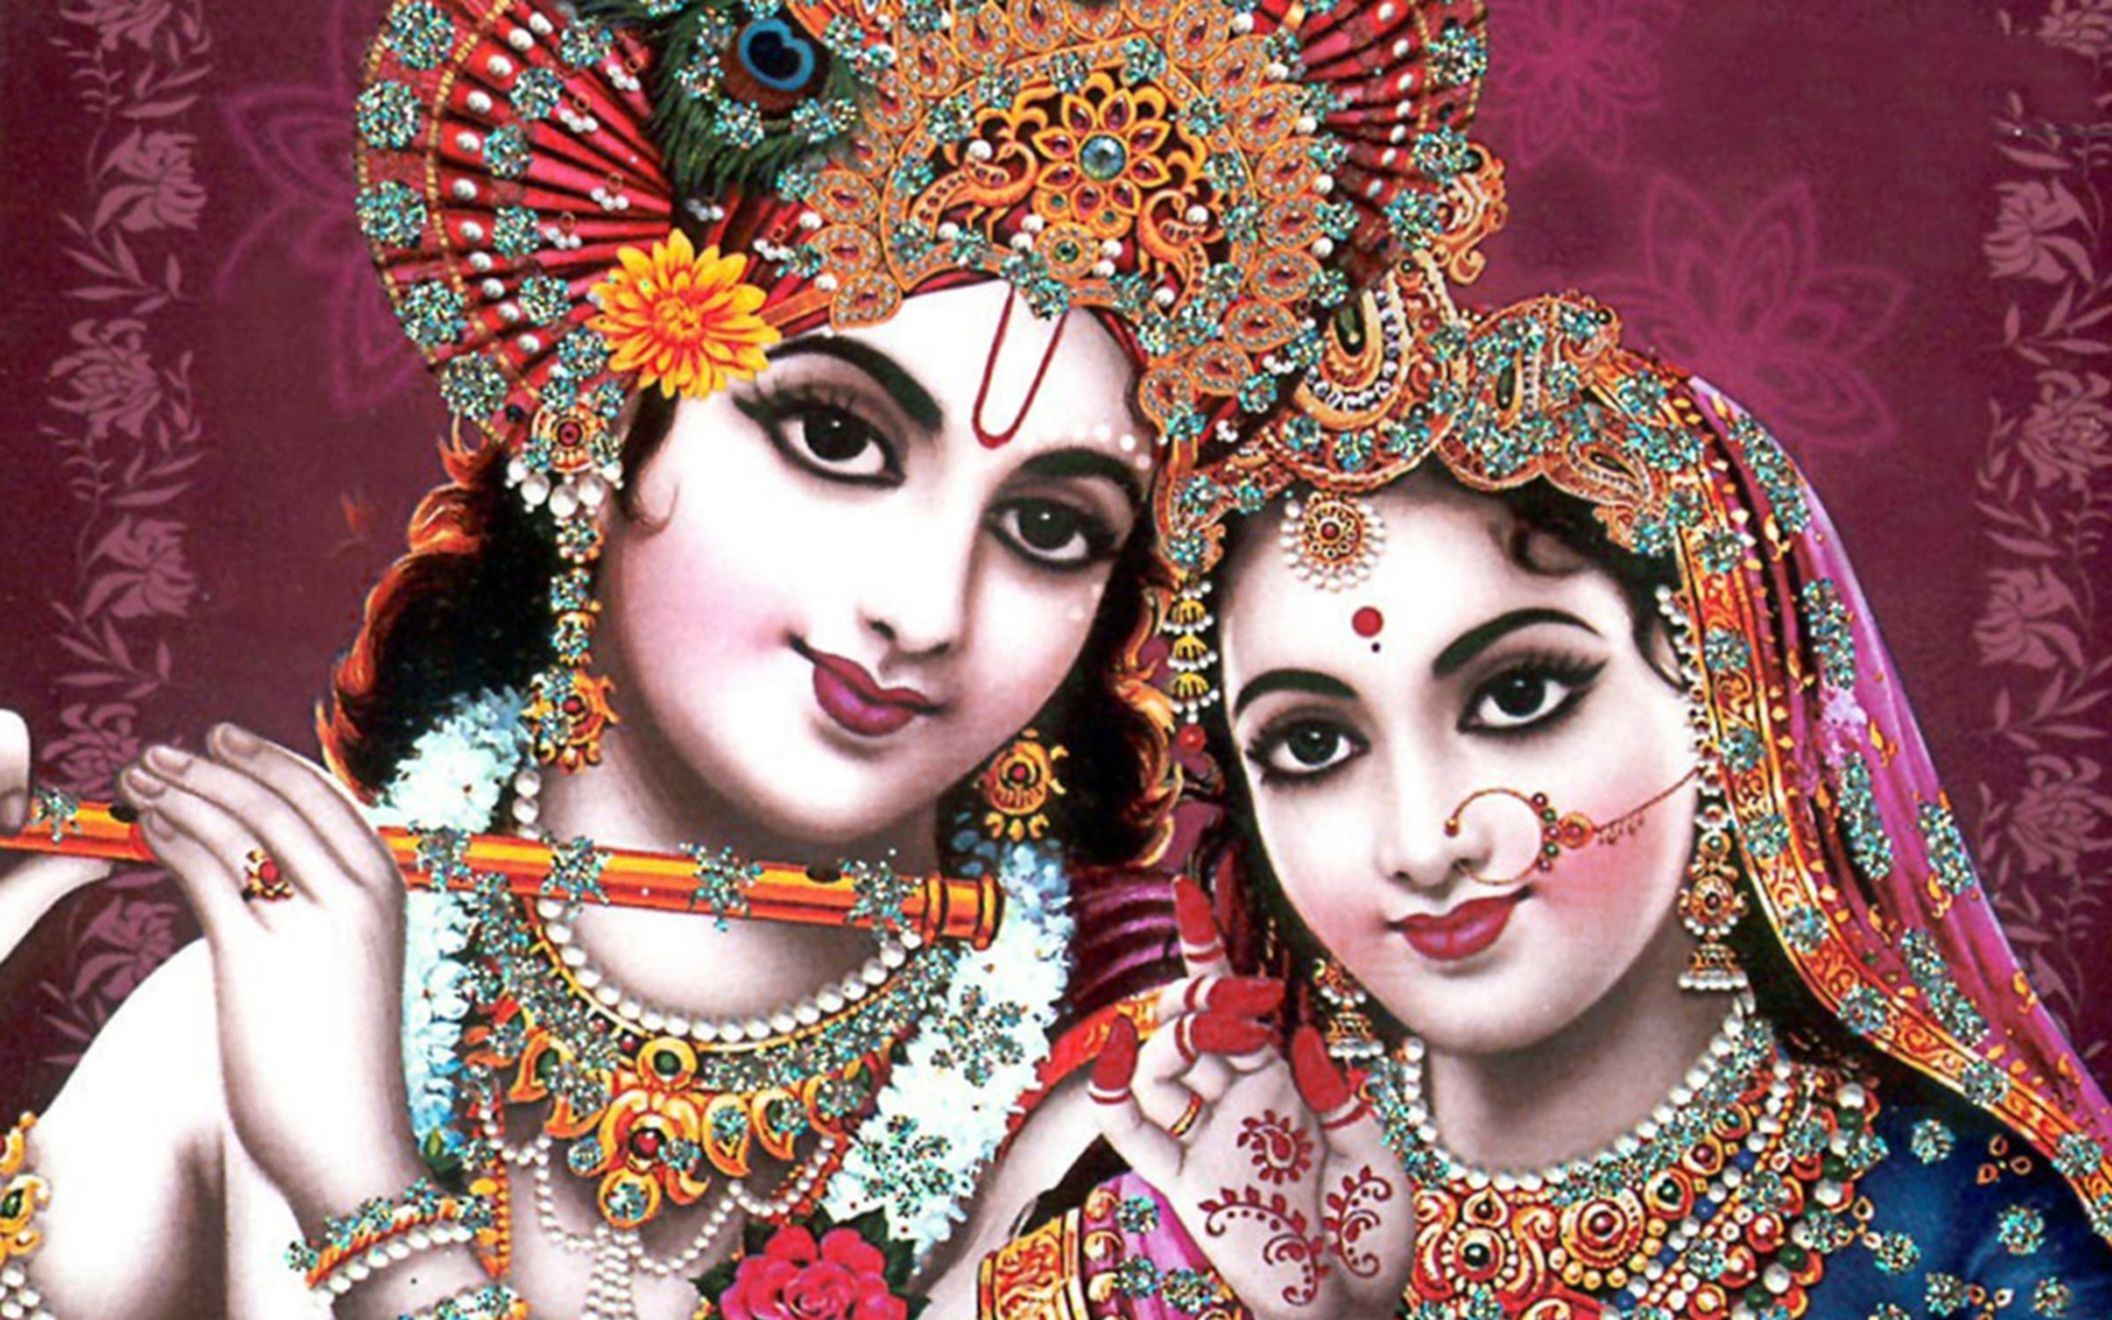 Indian God Radha Krishna Wide Wallpaper Desktop Hd Wallpaper Download Free Image Picture Photo On Dailyhdwallpaper Com 3894